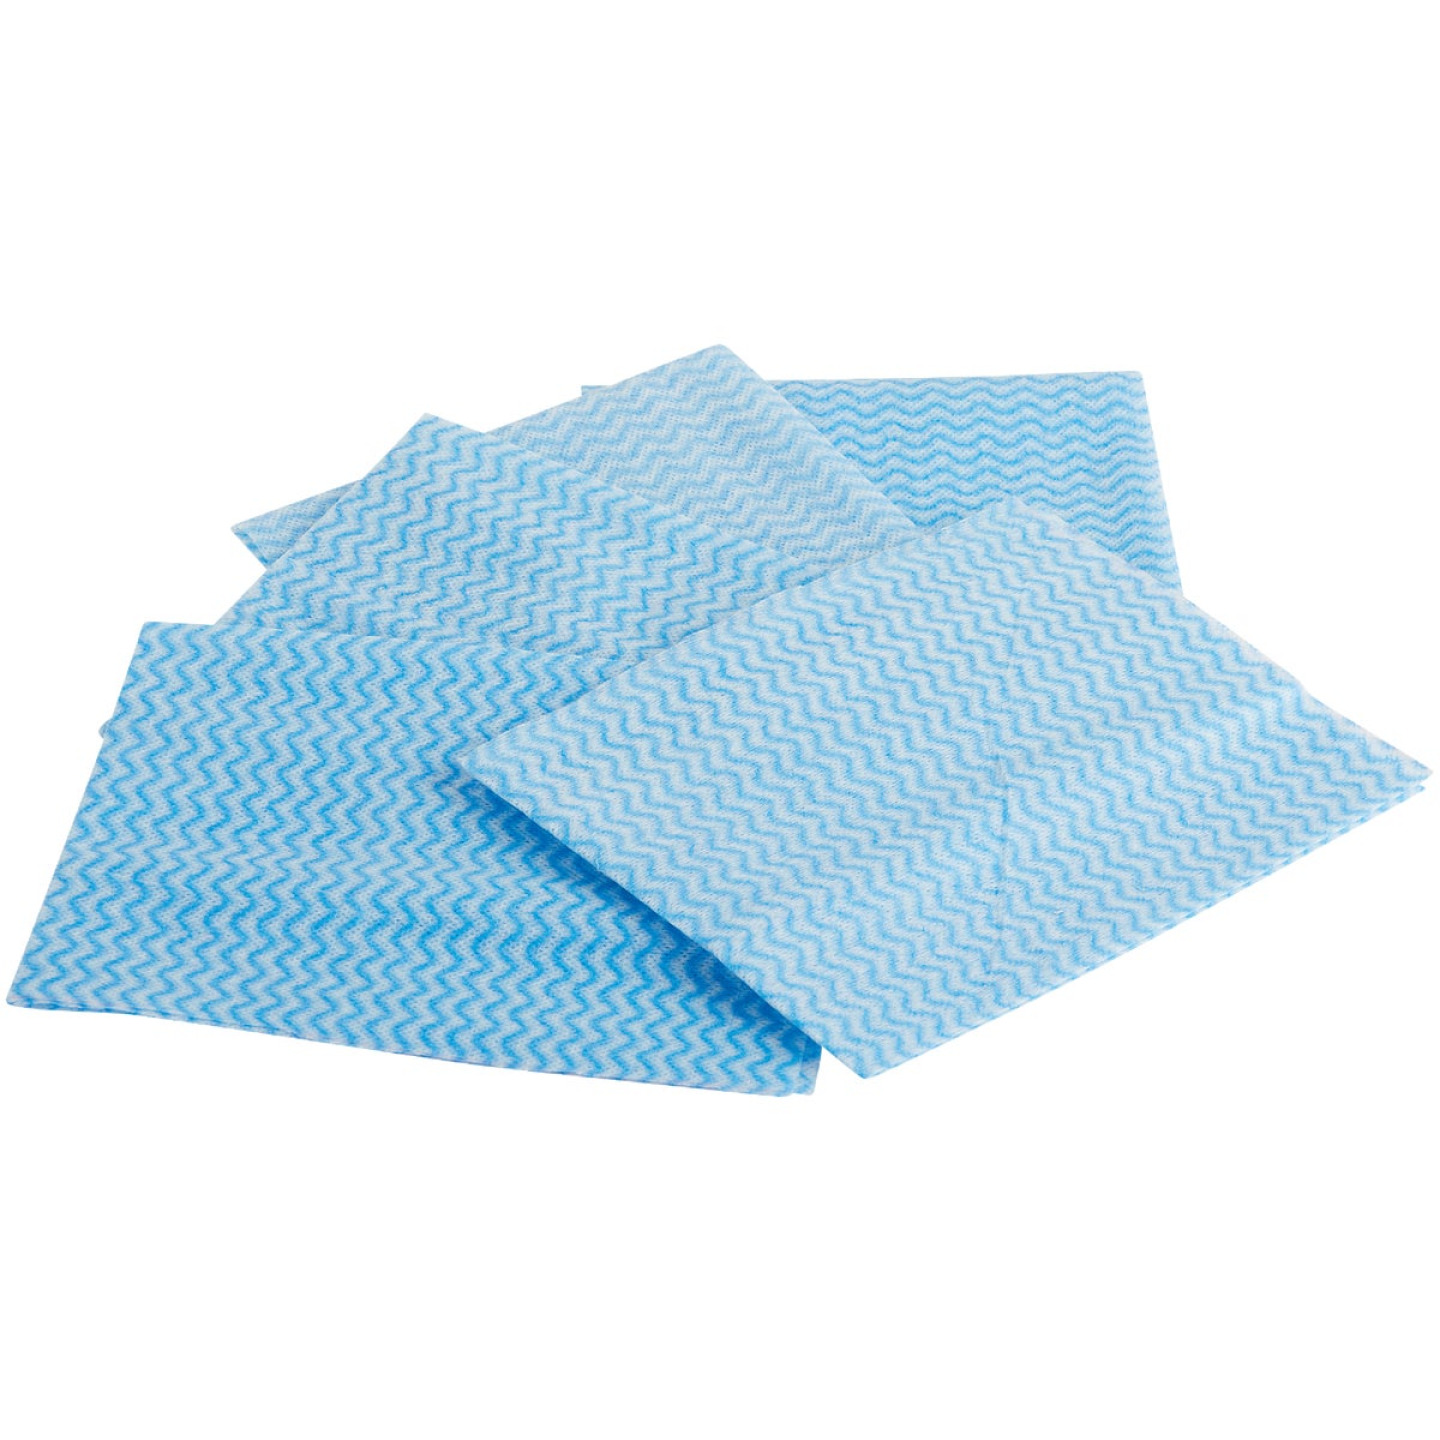 Smart Savers 12.6 In. x 15.75 In. Multi-Use Cleaning Cloth (5-Pack) Image 2